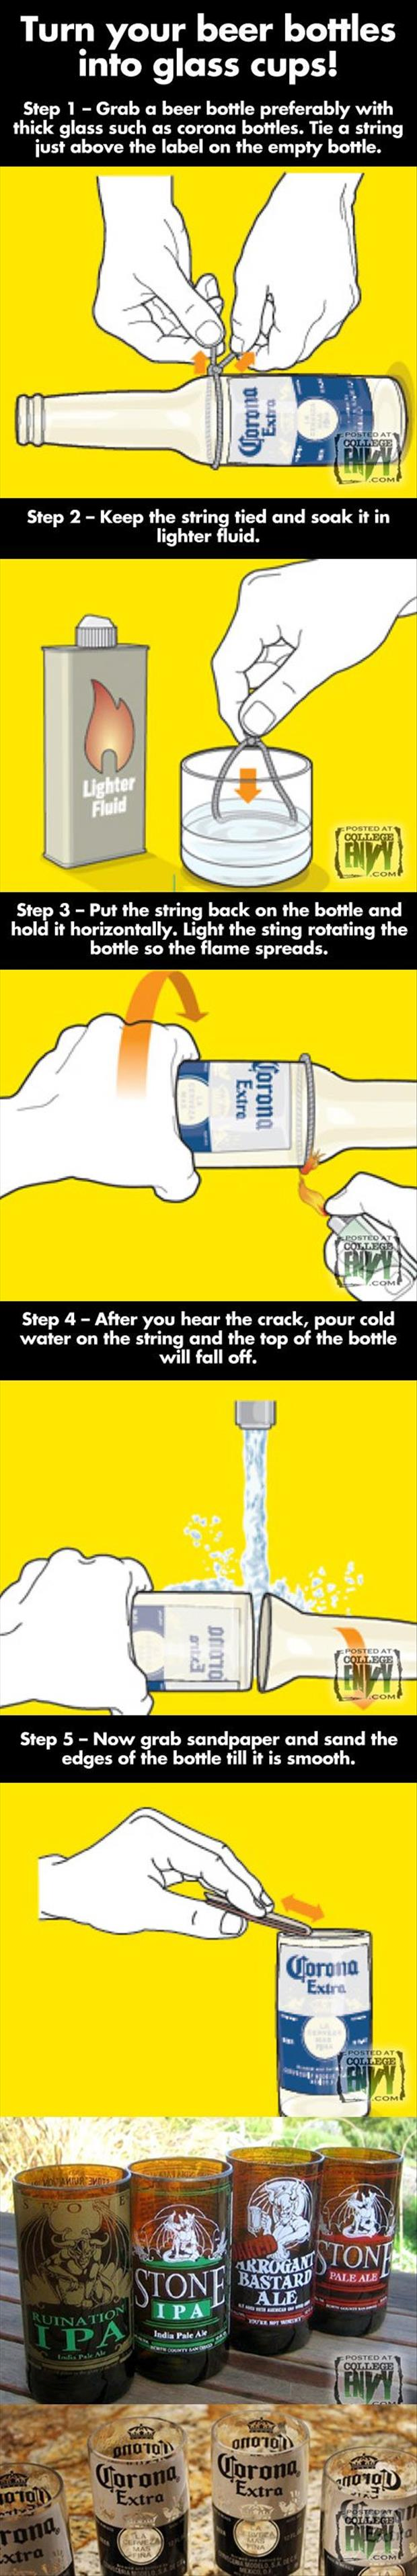 How to break a glass bottle